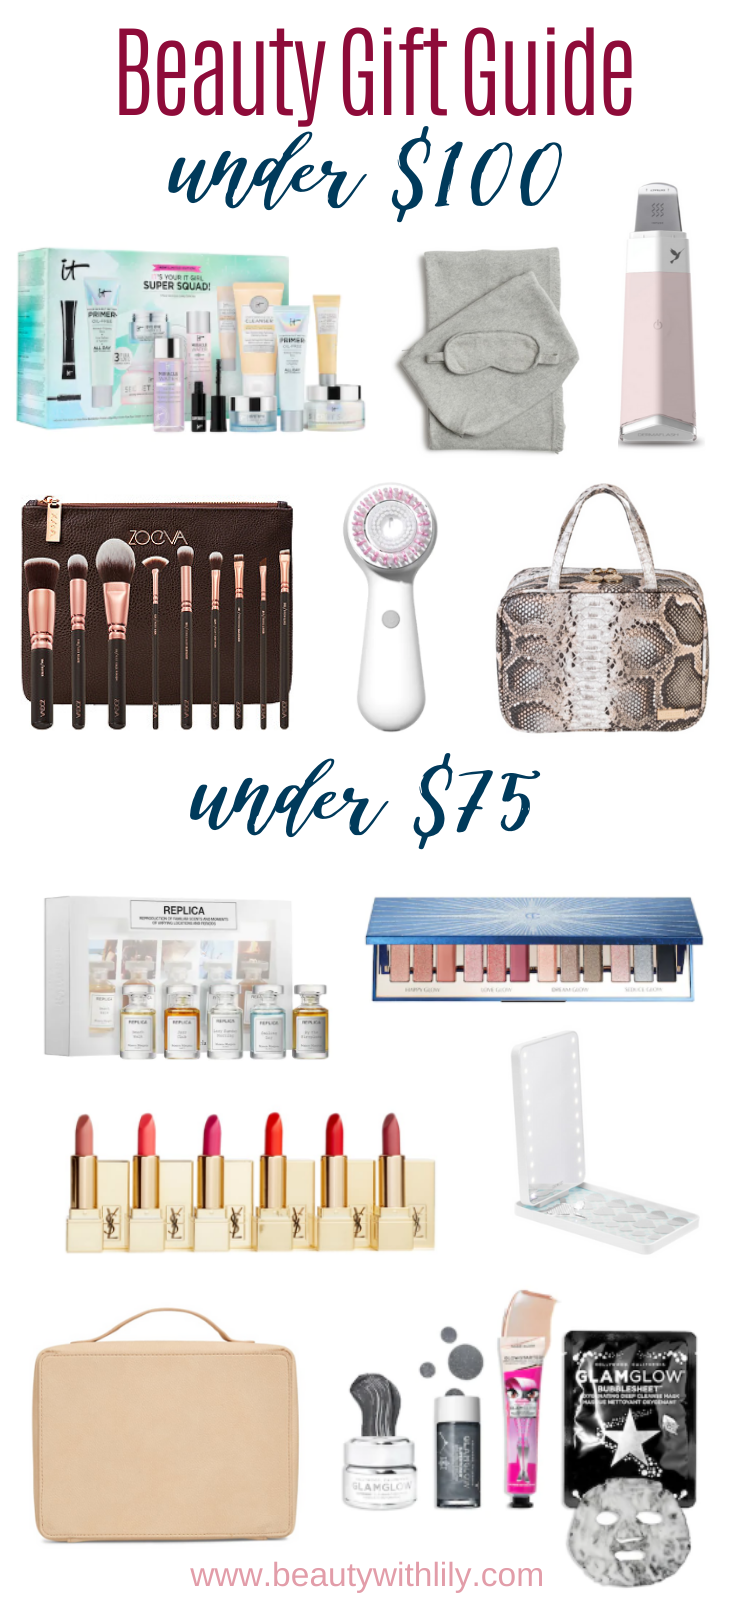 Gift Guide for Beauty Lovers // Beauty Gift Guide // Gift Ideas for Women // Gift Ideas for Teens // Stocking Stuffers for Teens // Stocking Stuffers for Makeup Lovers // Gift Guide for Makeup Lovers | Beauty With Lily